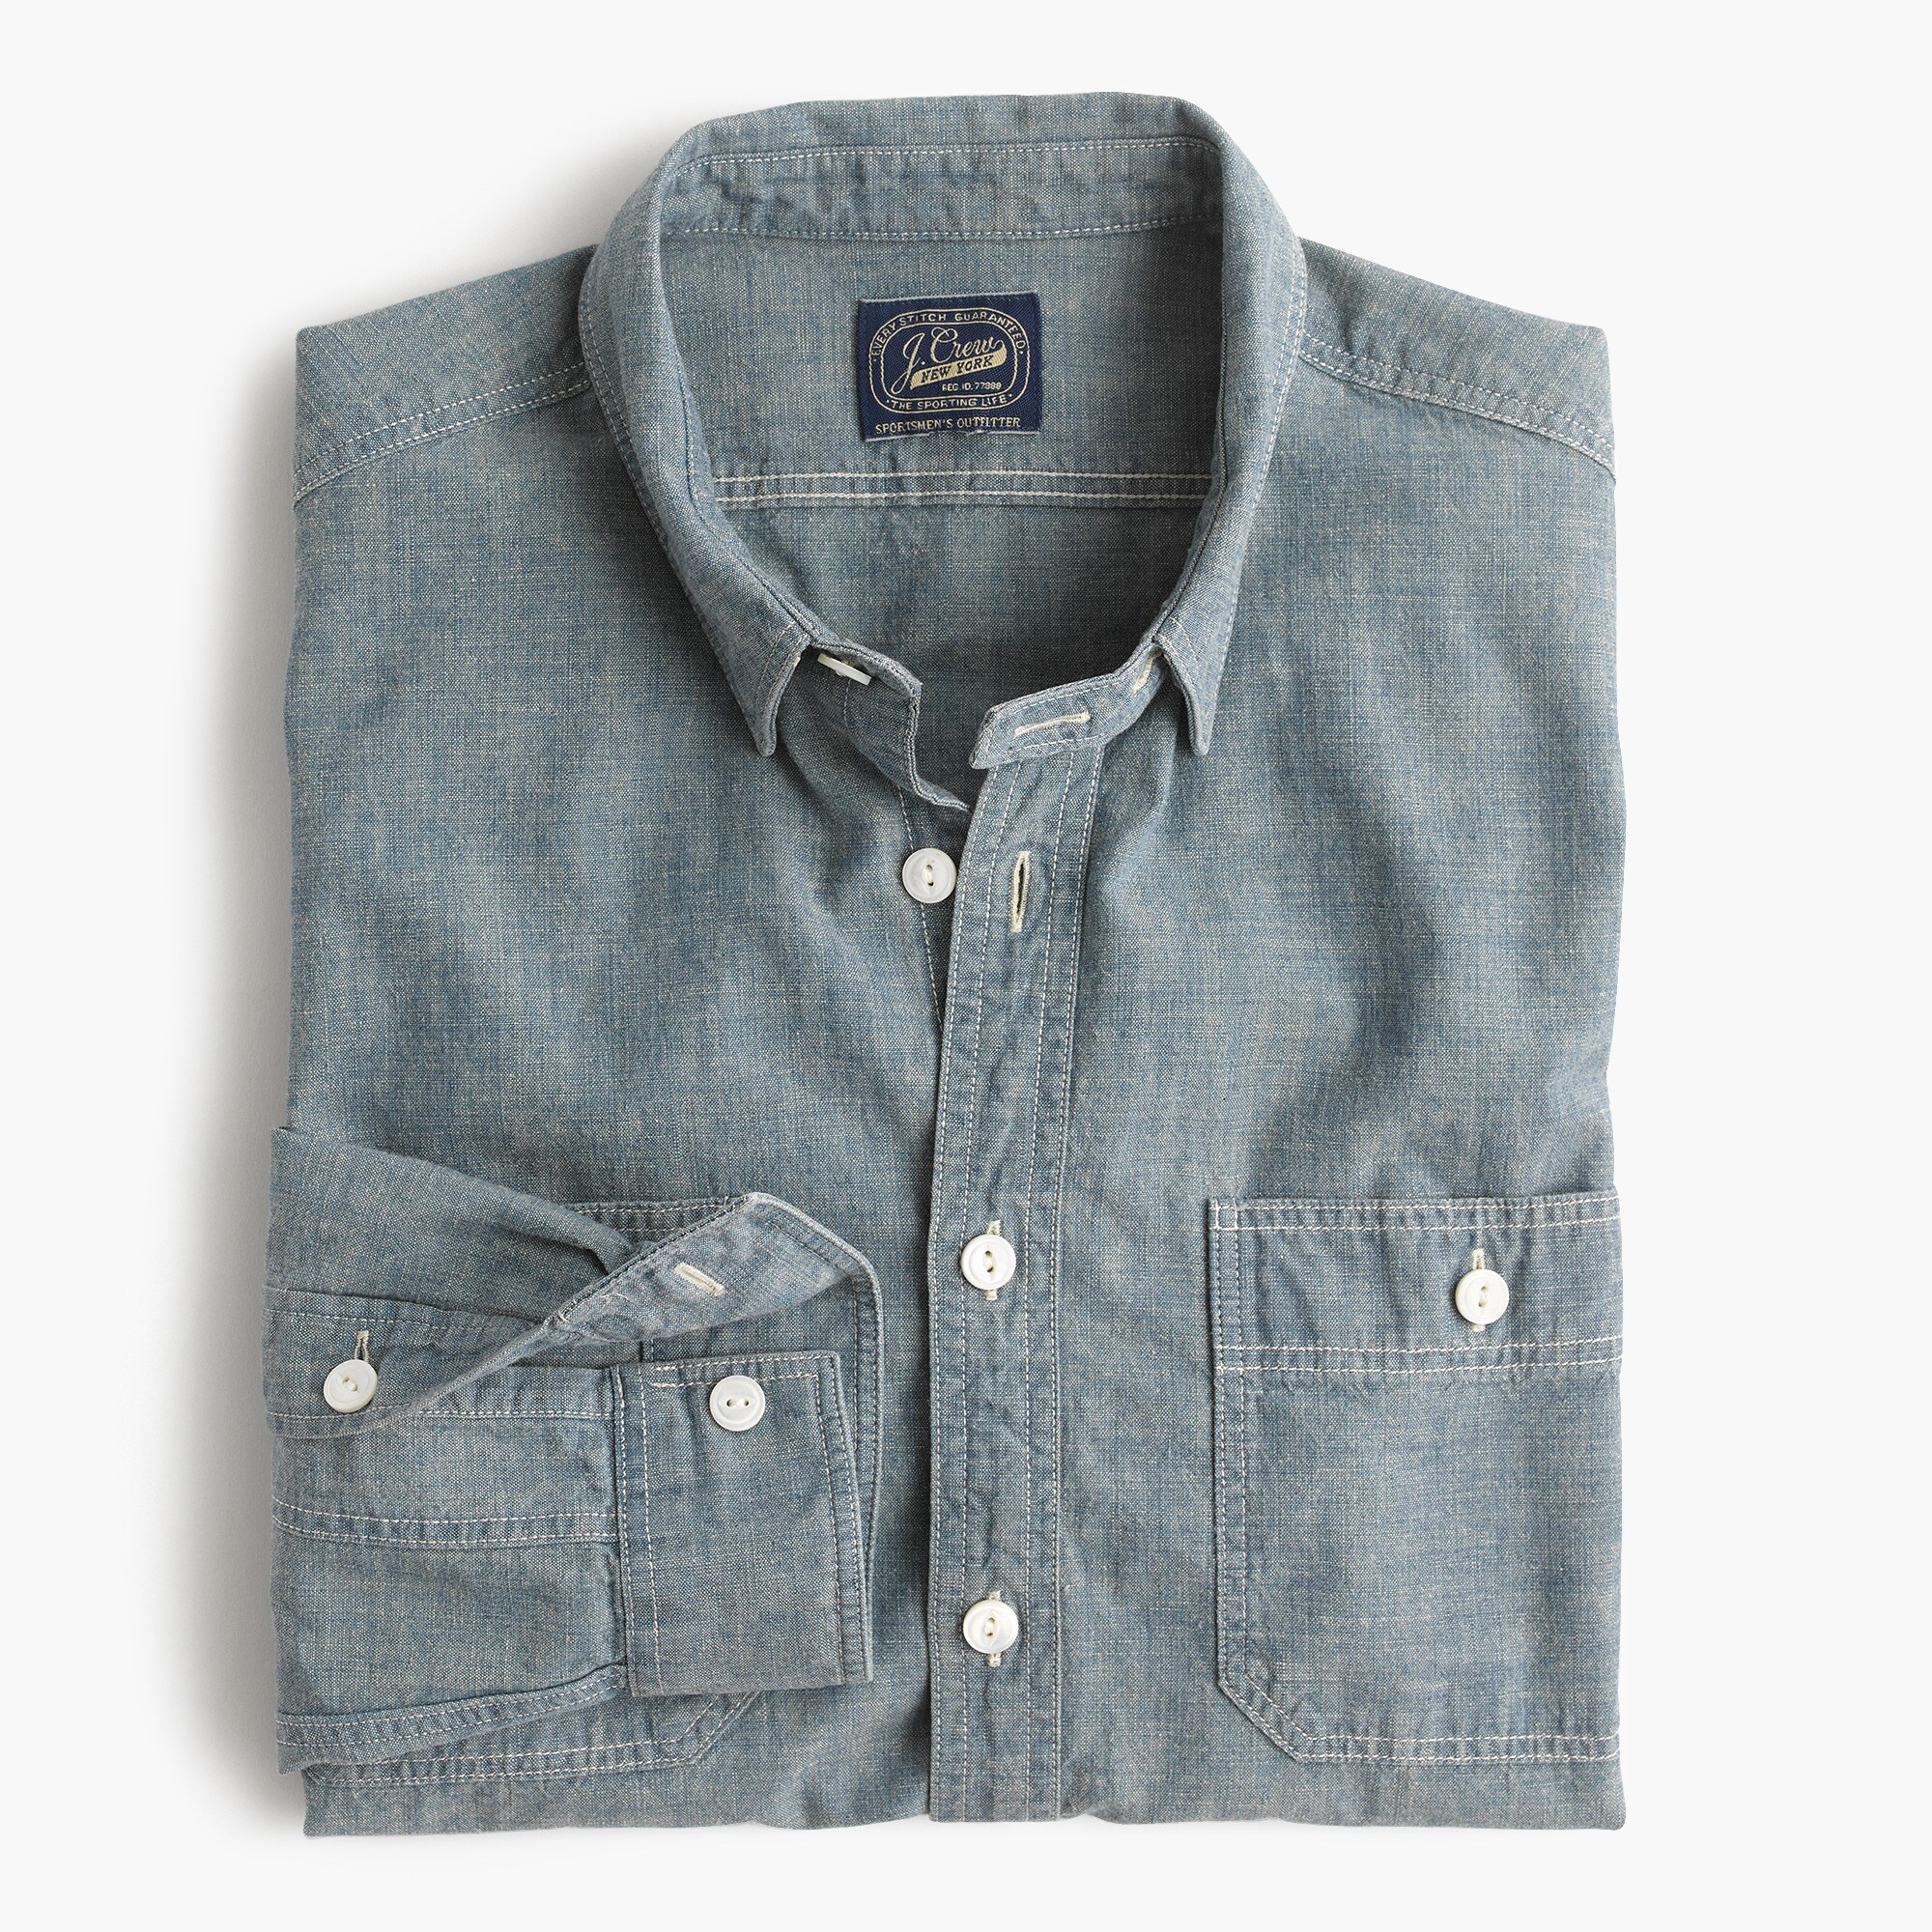 mens Slim selvedge Japanese chambray utility shirt